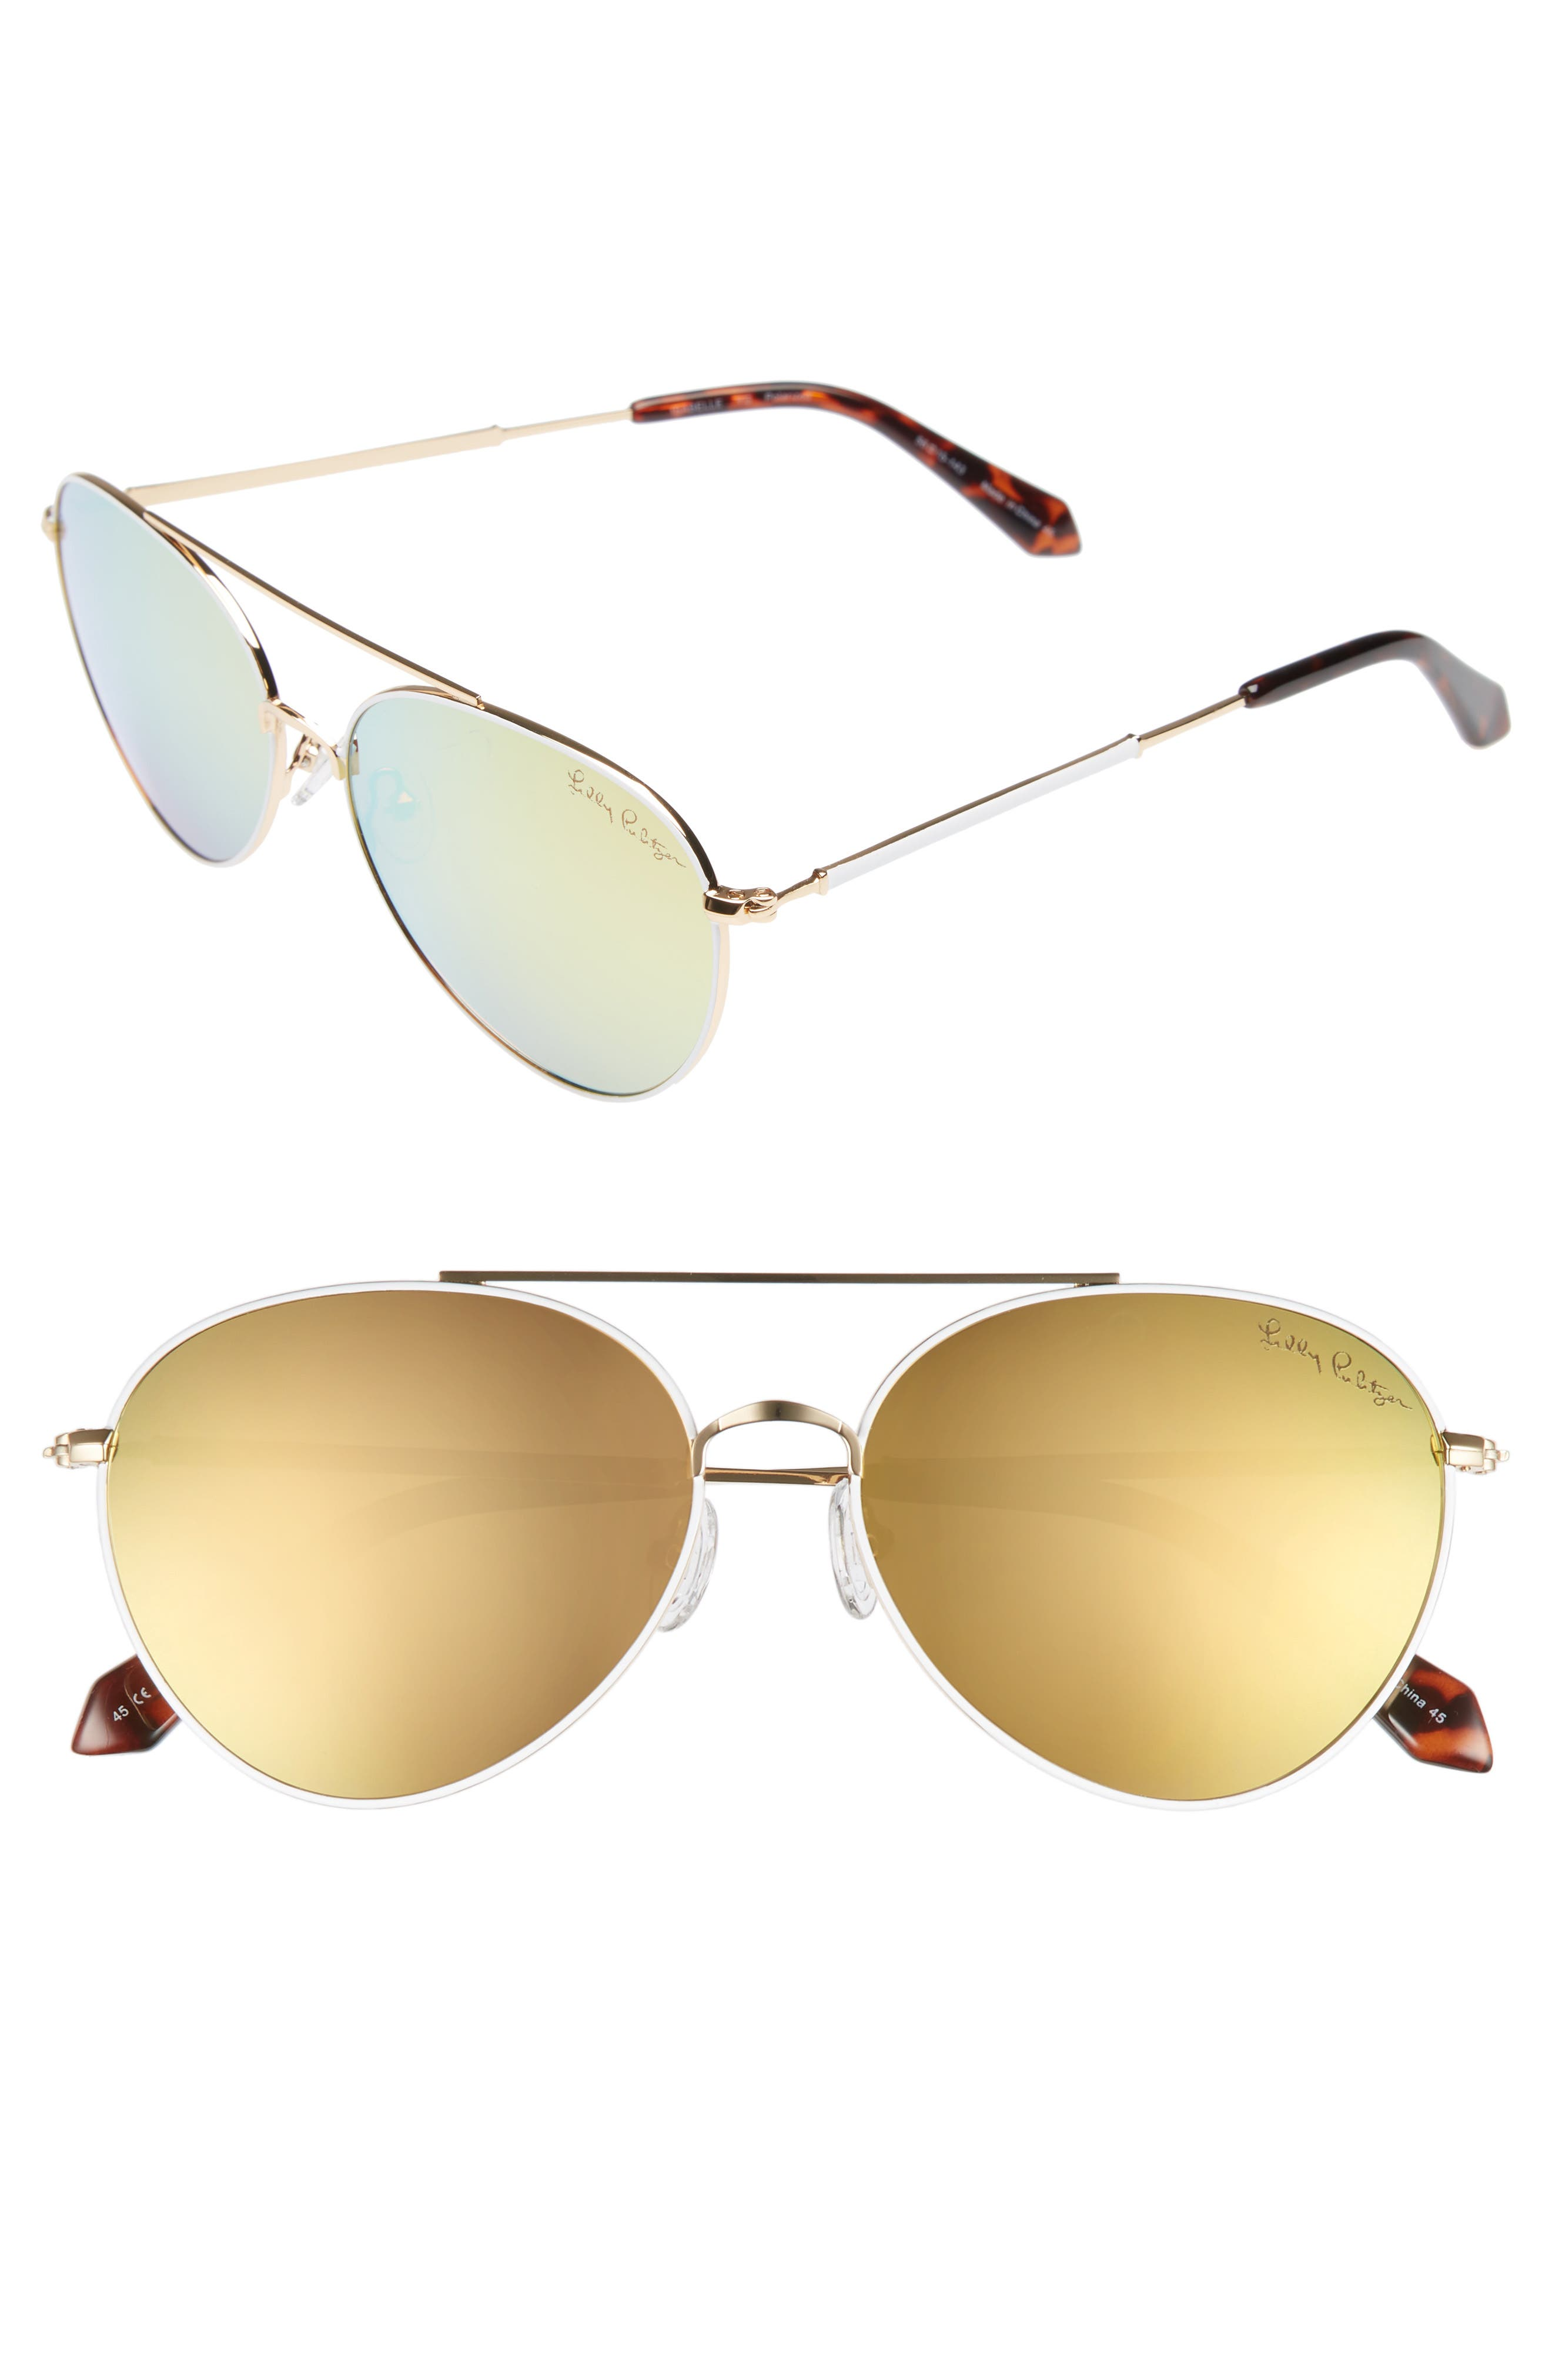 Isabelle 56mm Polarized Metal Aviator Sunglasses,                             Main thumbnail 1, color,                             GOLD/ GOLD